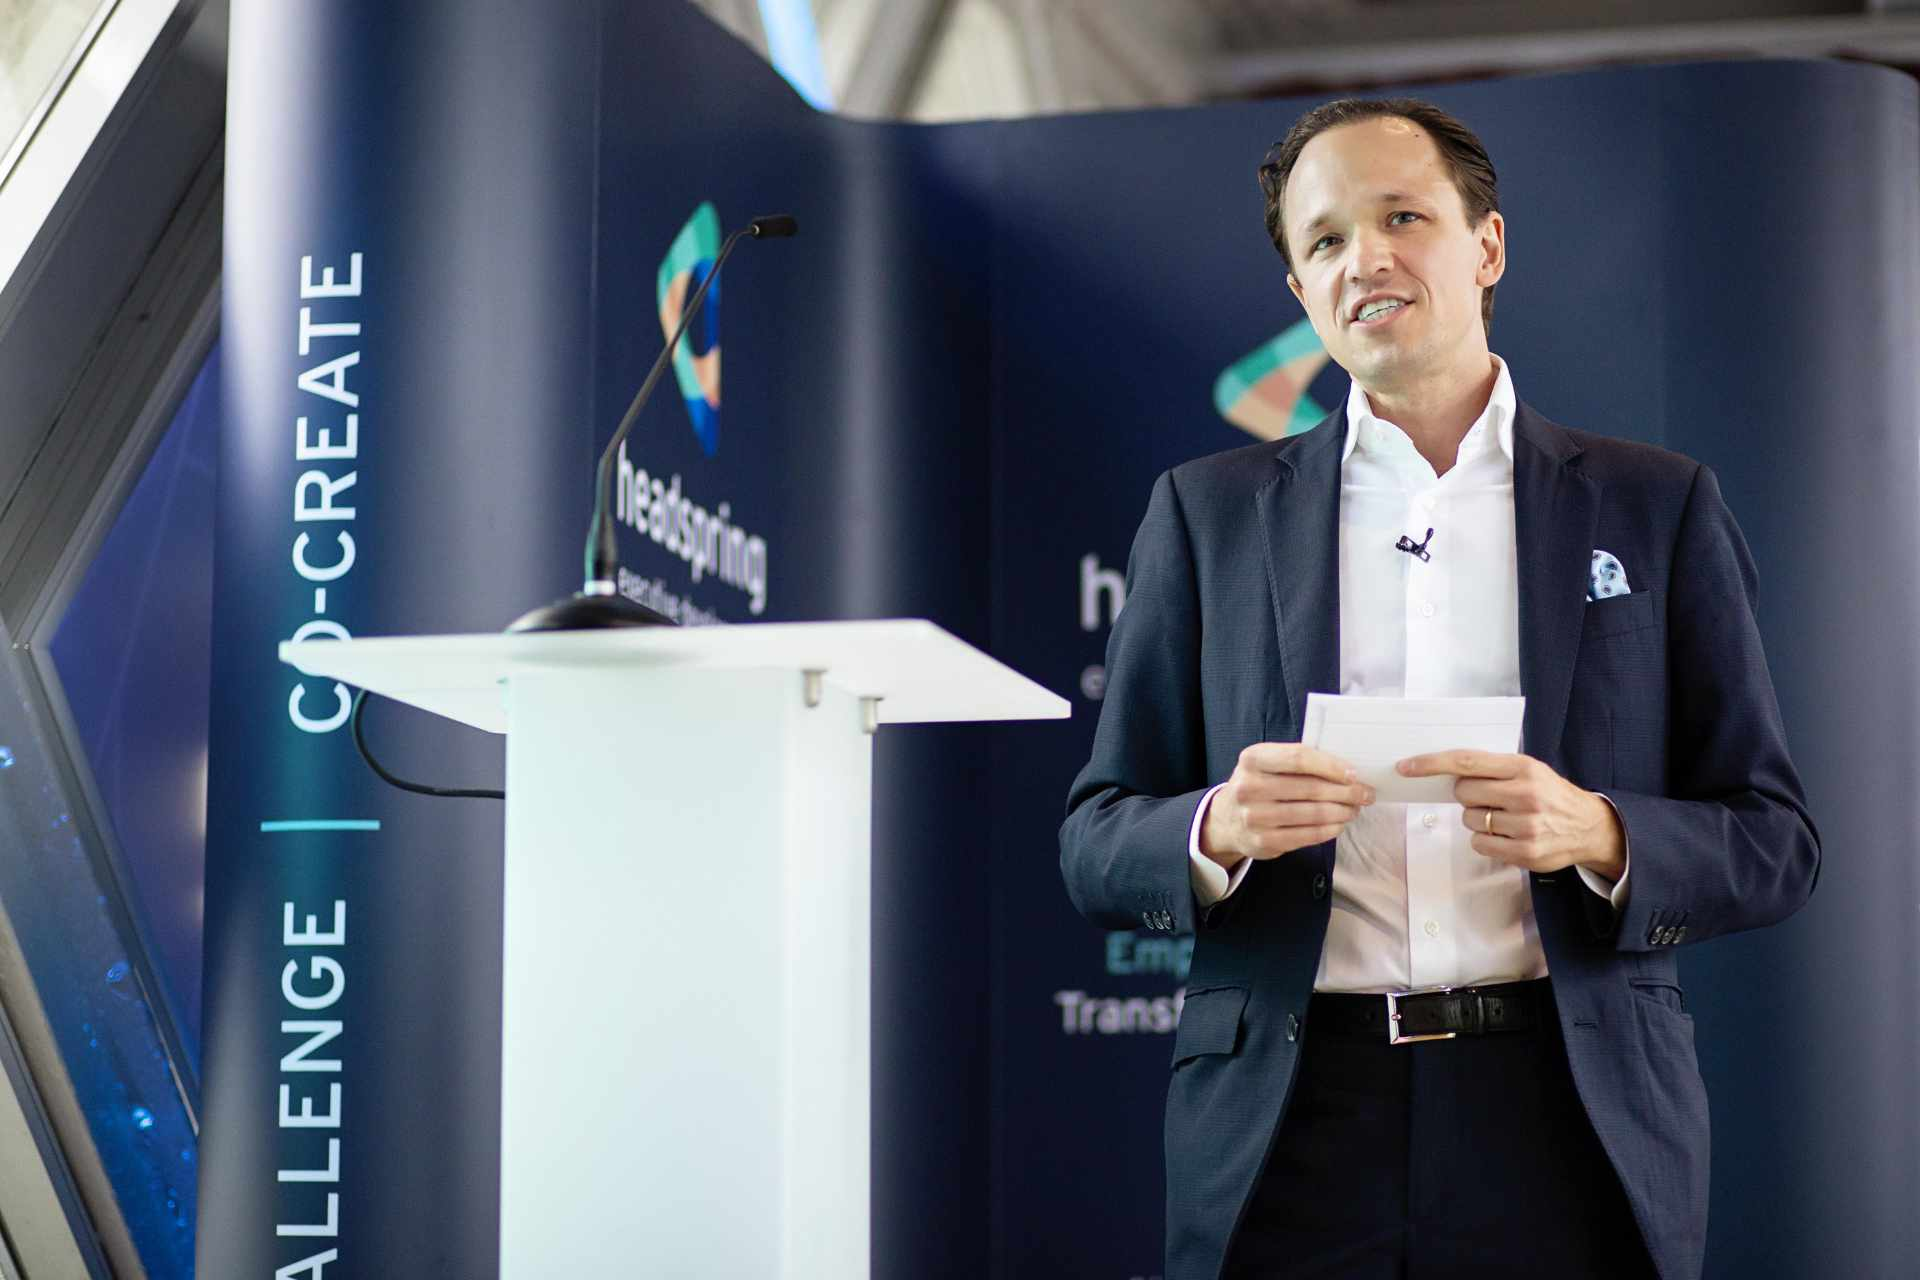 Gustaf Nordback speaking at the Headspring brand launch at Tower Bridge, London.